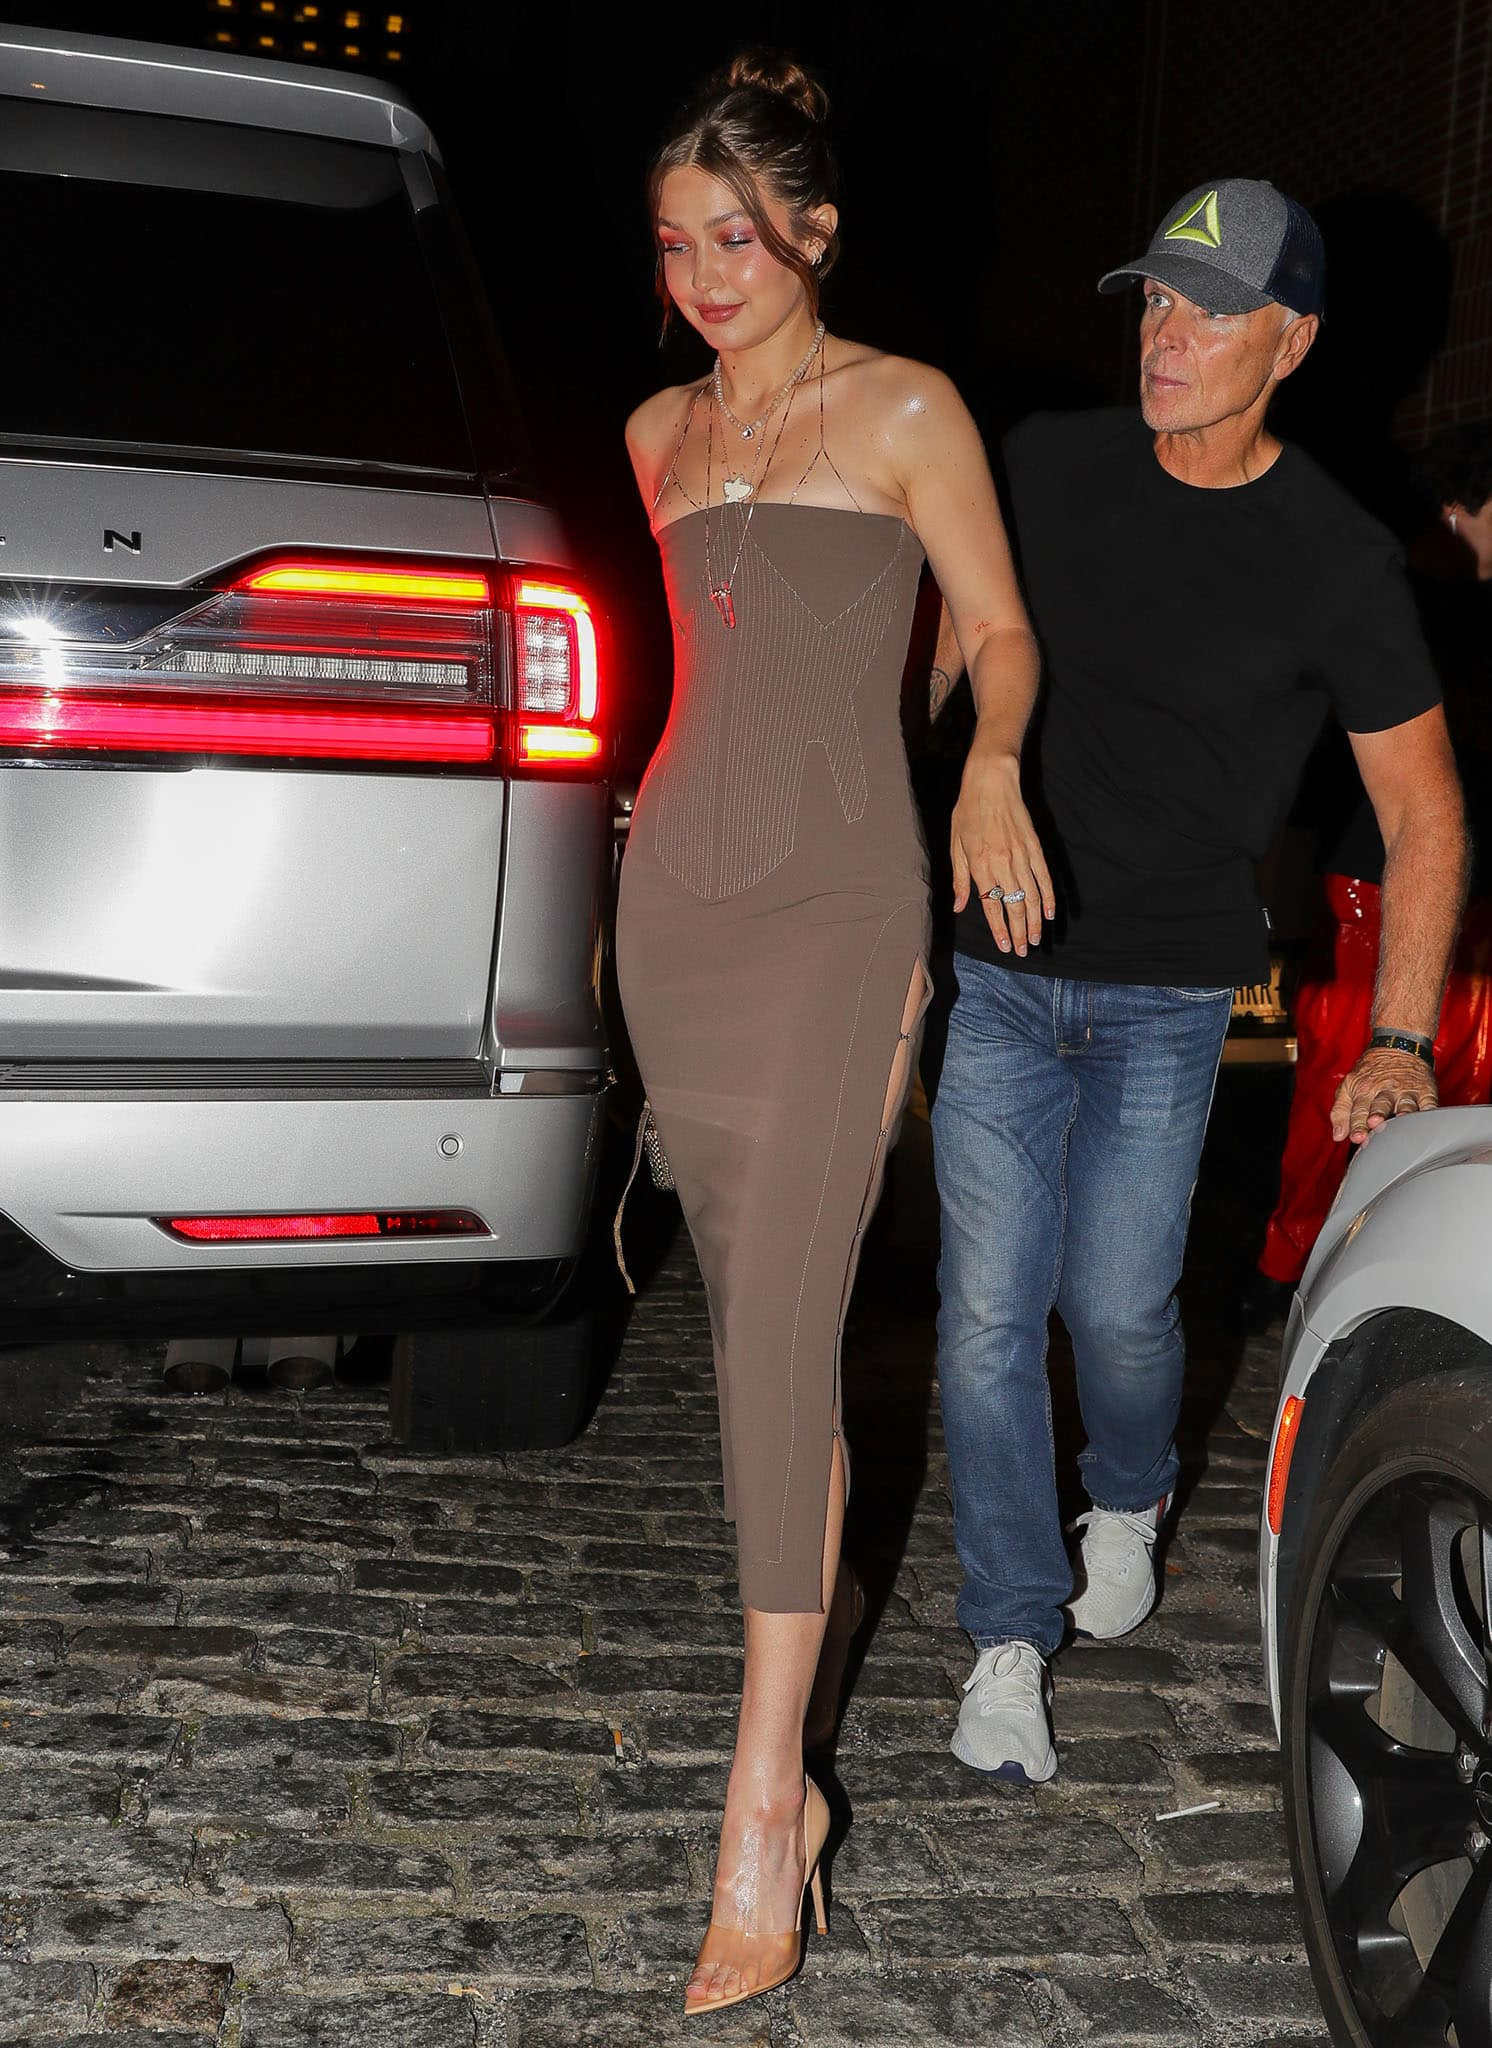 Gigi Hadid arrives at the launch of sister Bella Hadid's beverage brand Kin Euphorics in New York City on September 8, 2021